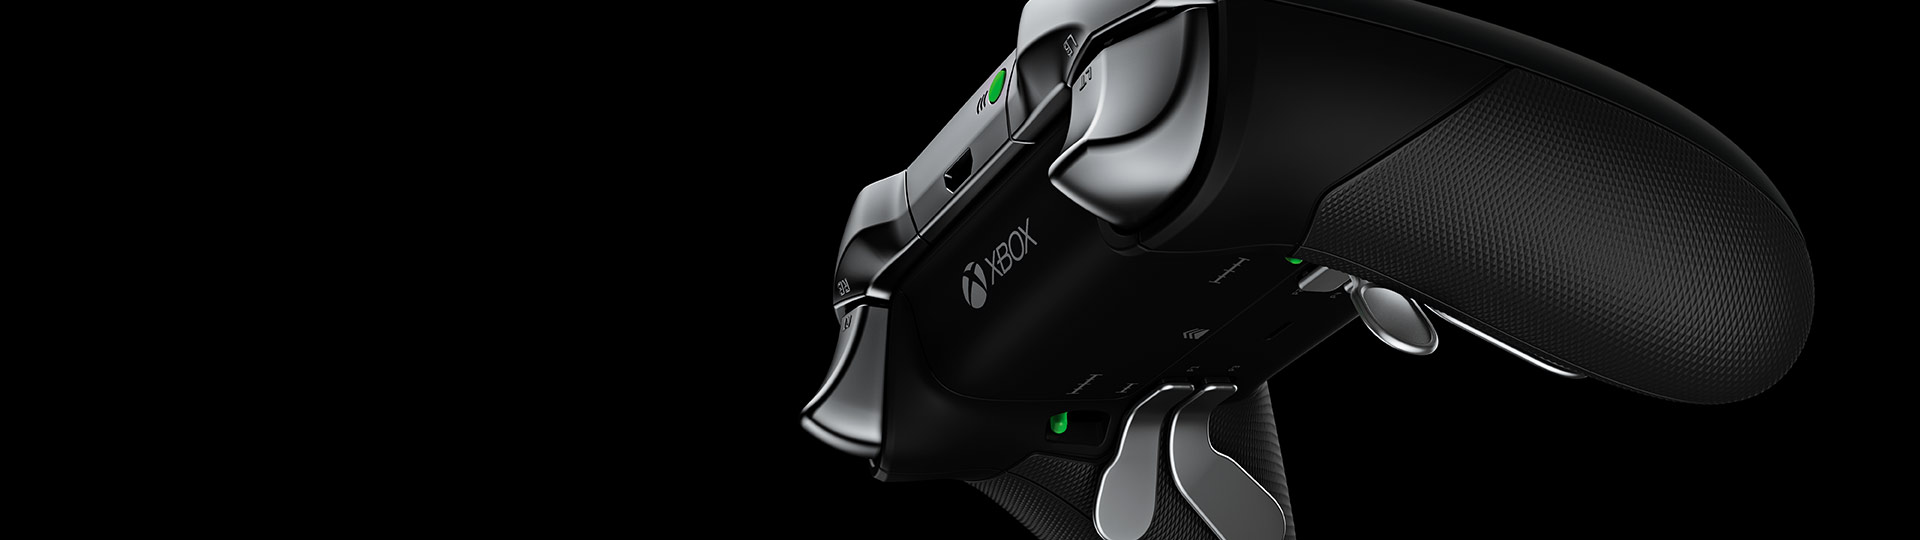 medium resolution of left angled view of xbox elite wireless controller